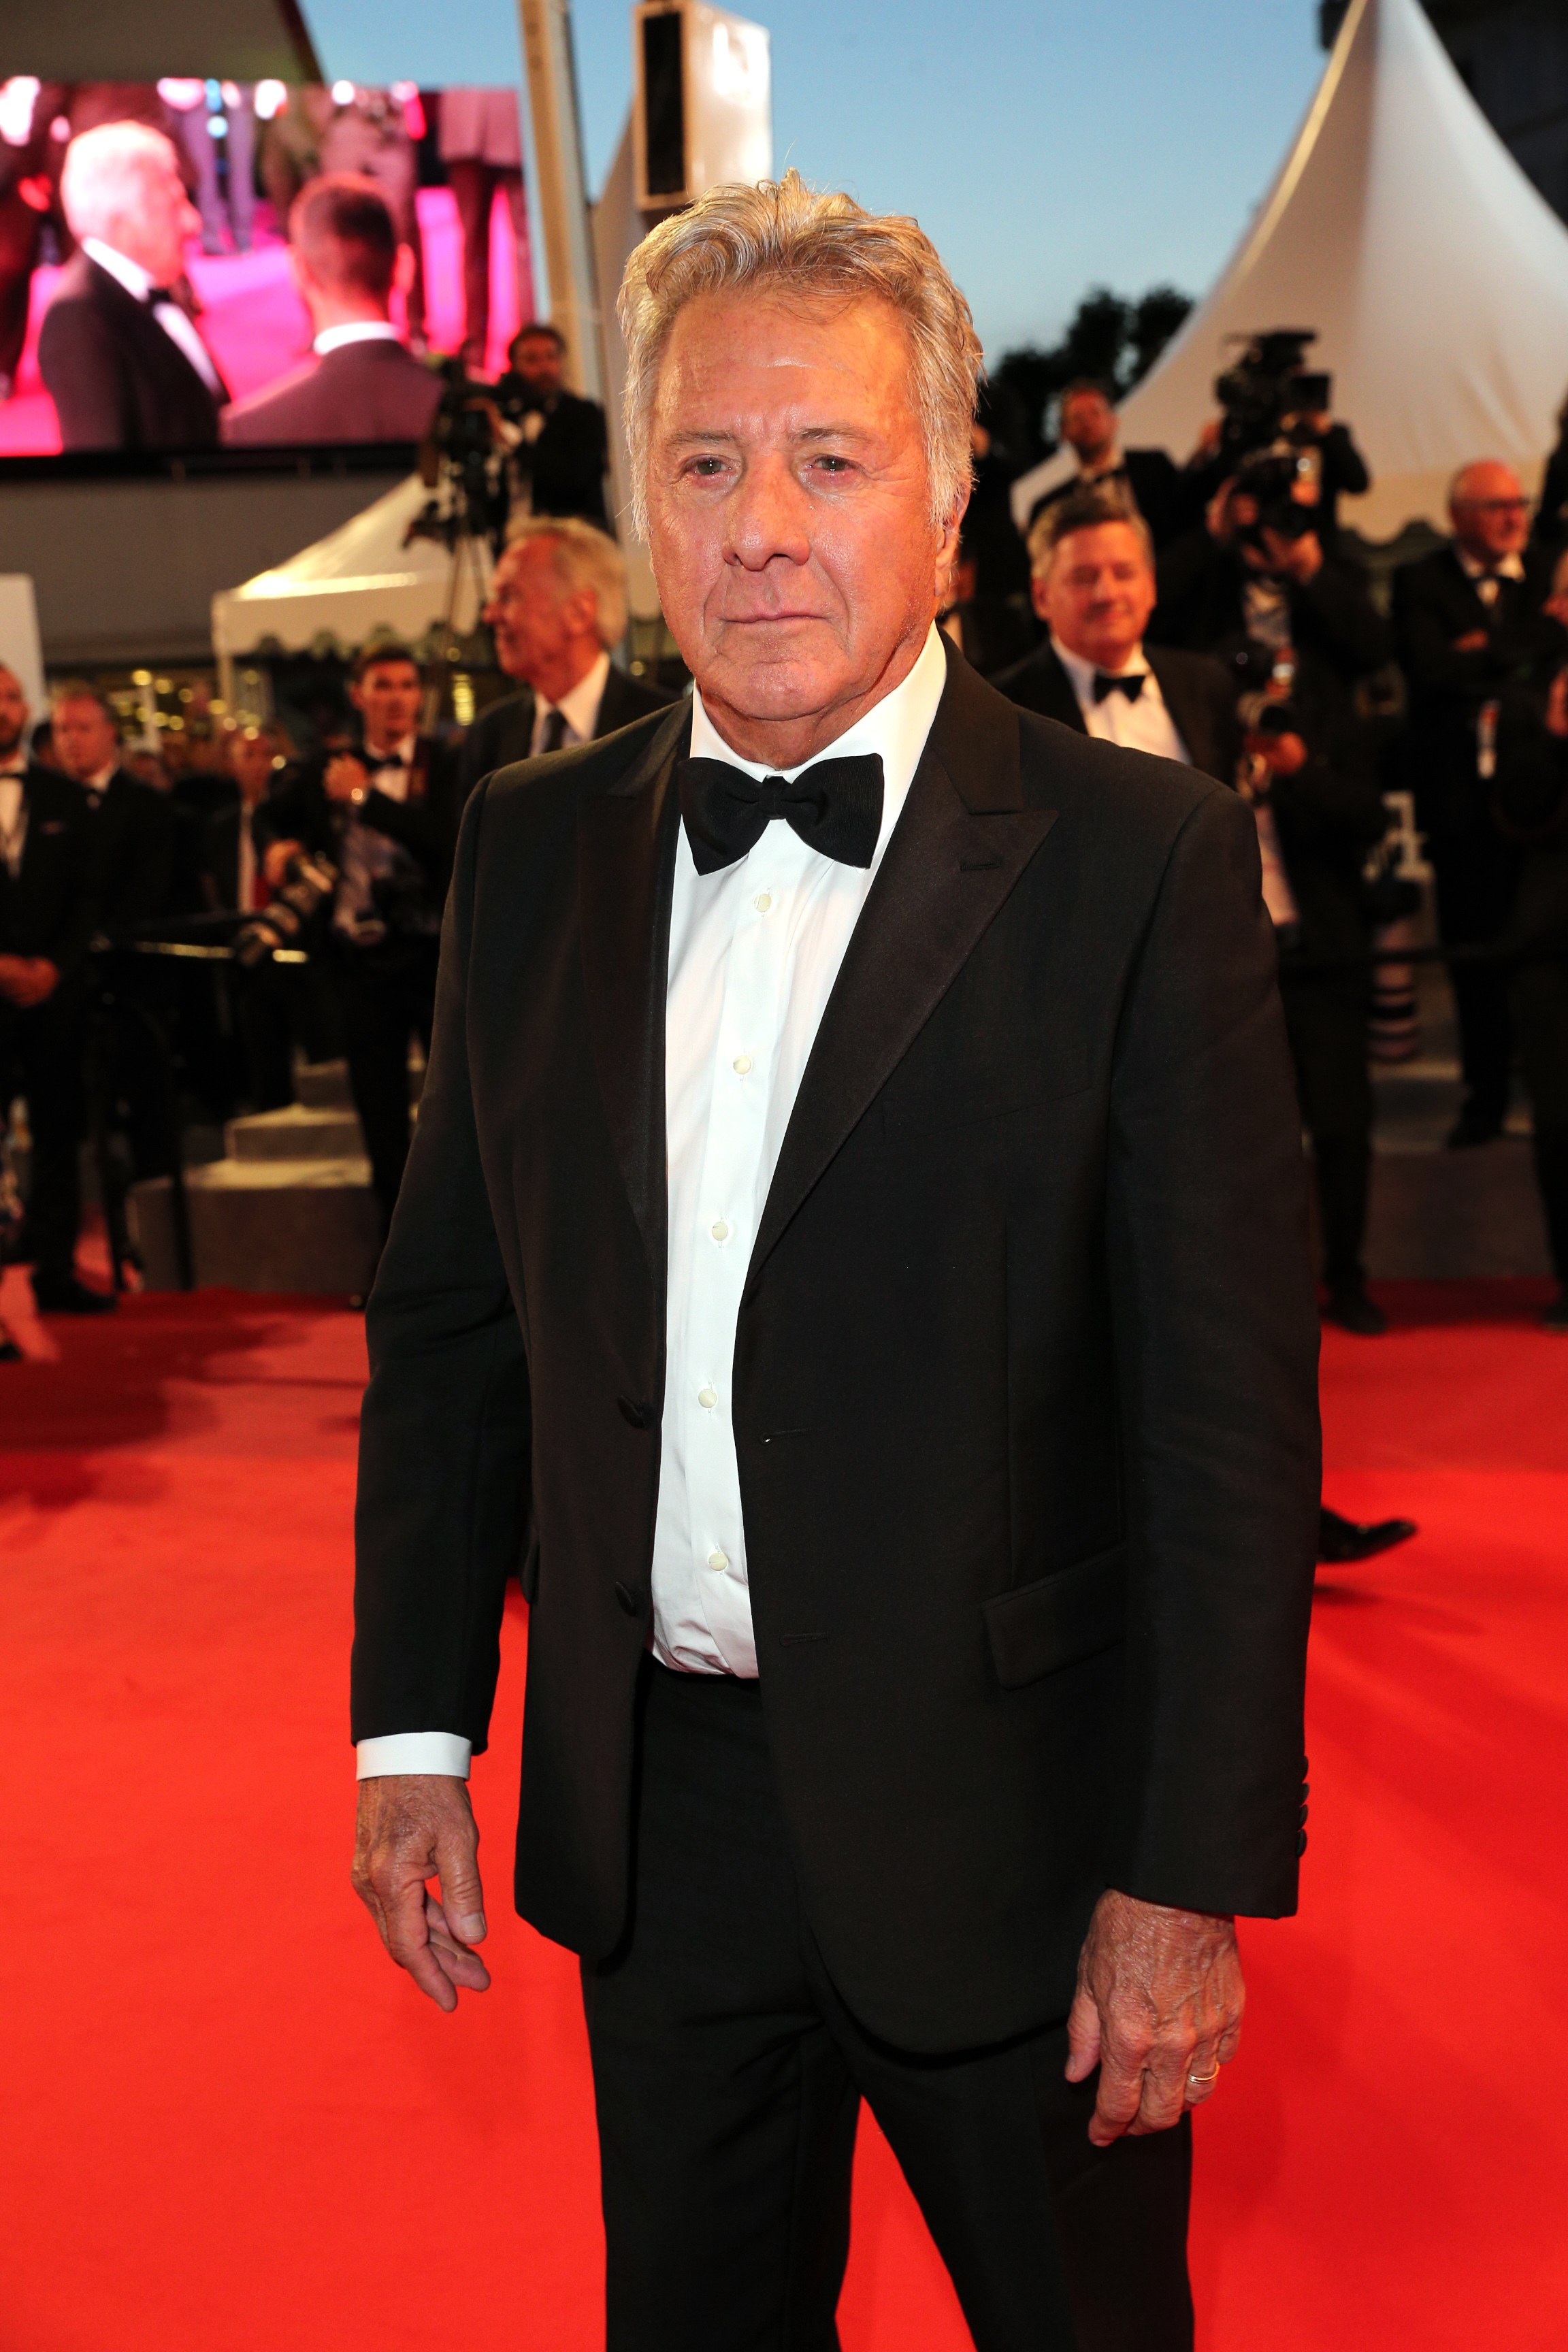 """CANNES, FRANCE - MAY 21:  Dustin Hoffman departs the """"The Meyerowitz Stories"""" screening during the 70th annual Cannes Film Festival at Palais des Festivals on May 21, 2017 in Cannes, France.  (Photo by Gisela Schober/Getty Images)"""